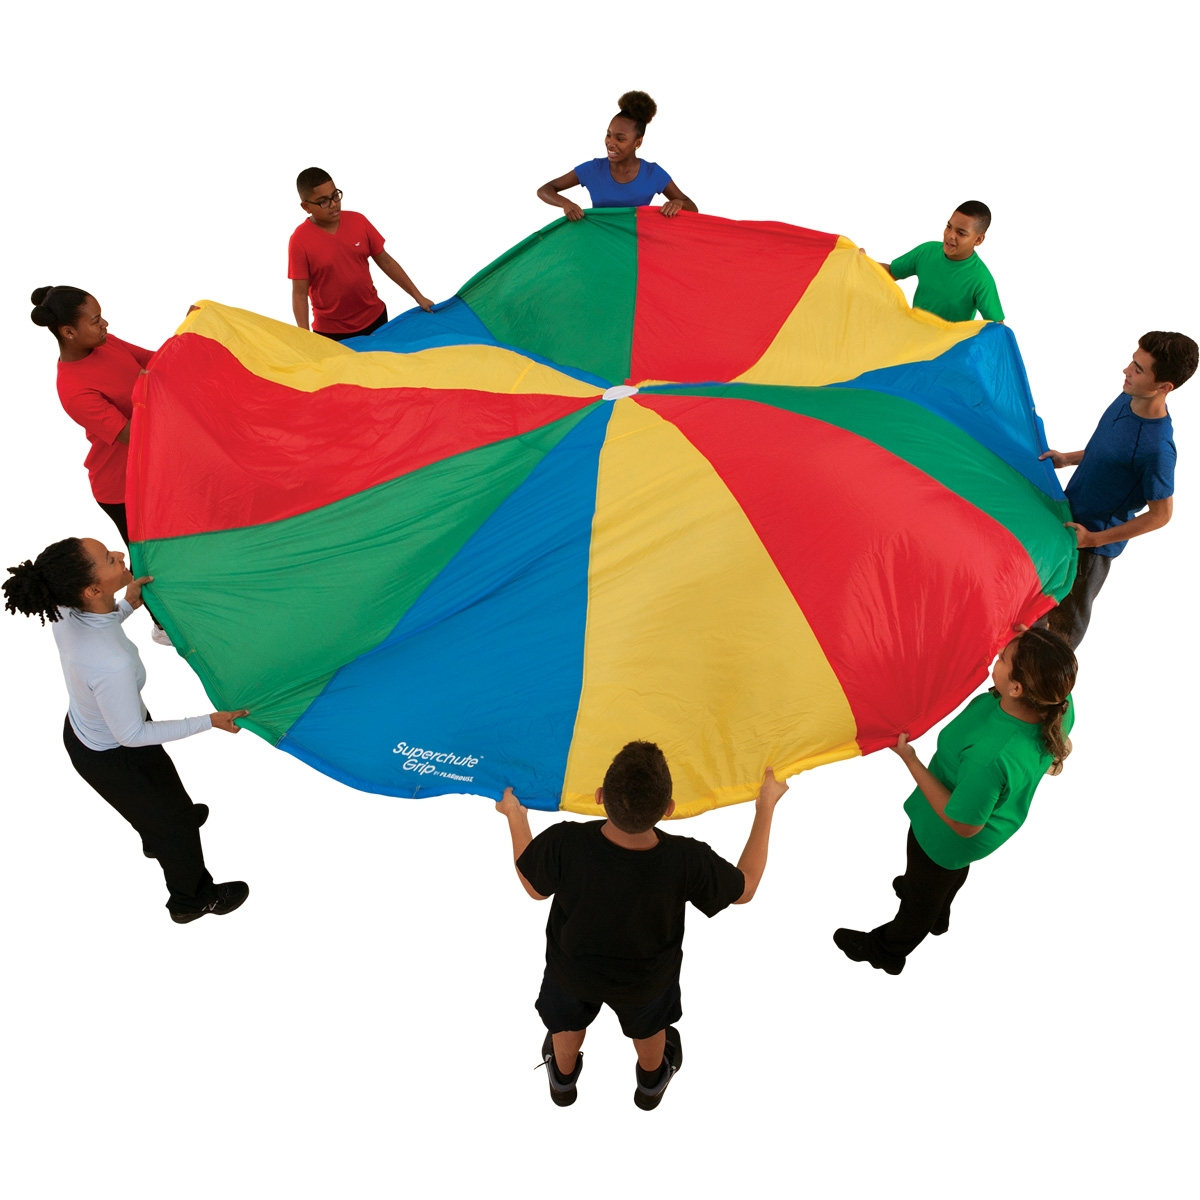 large multicolor gym parachute with students holding it